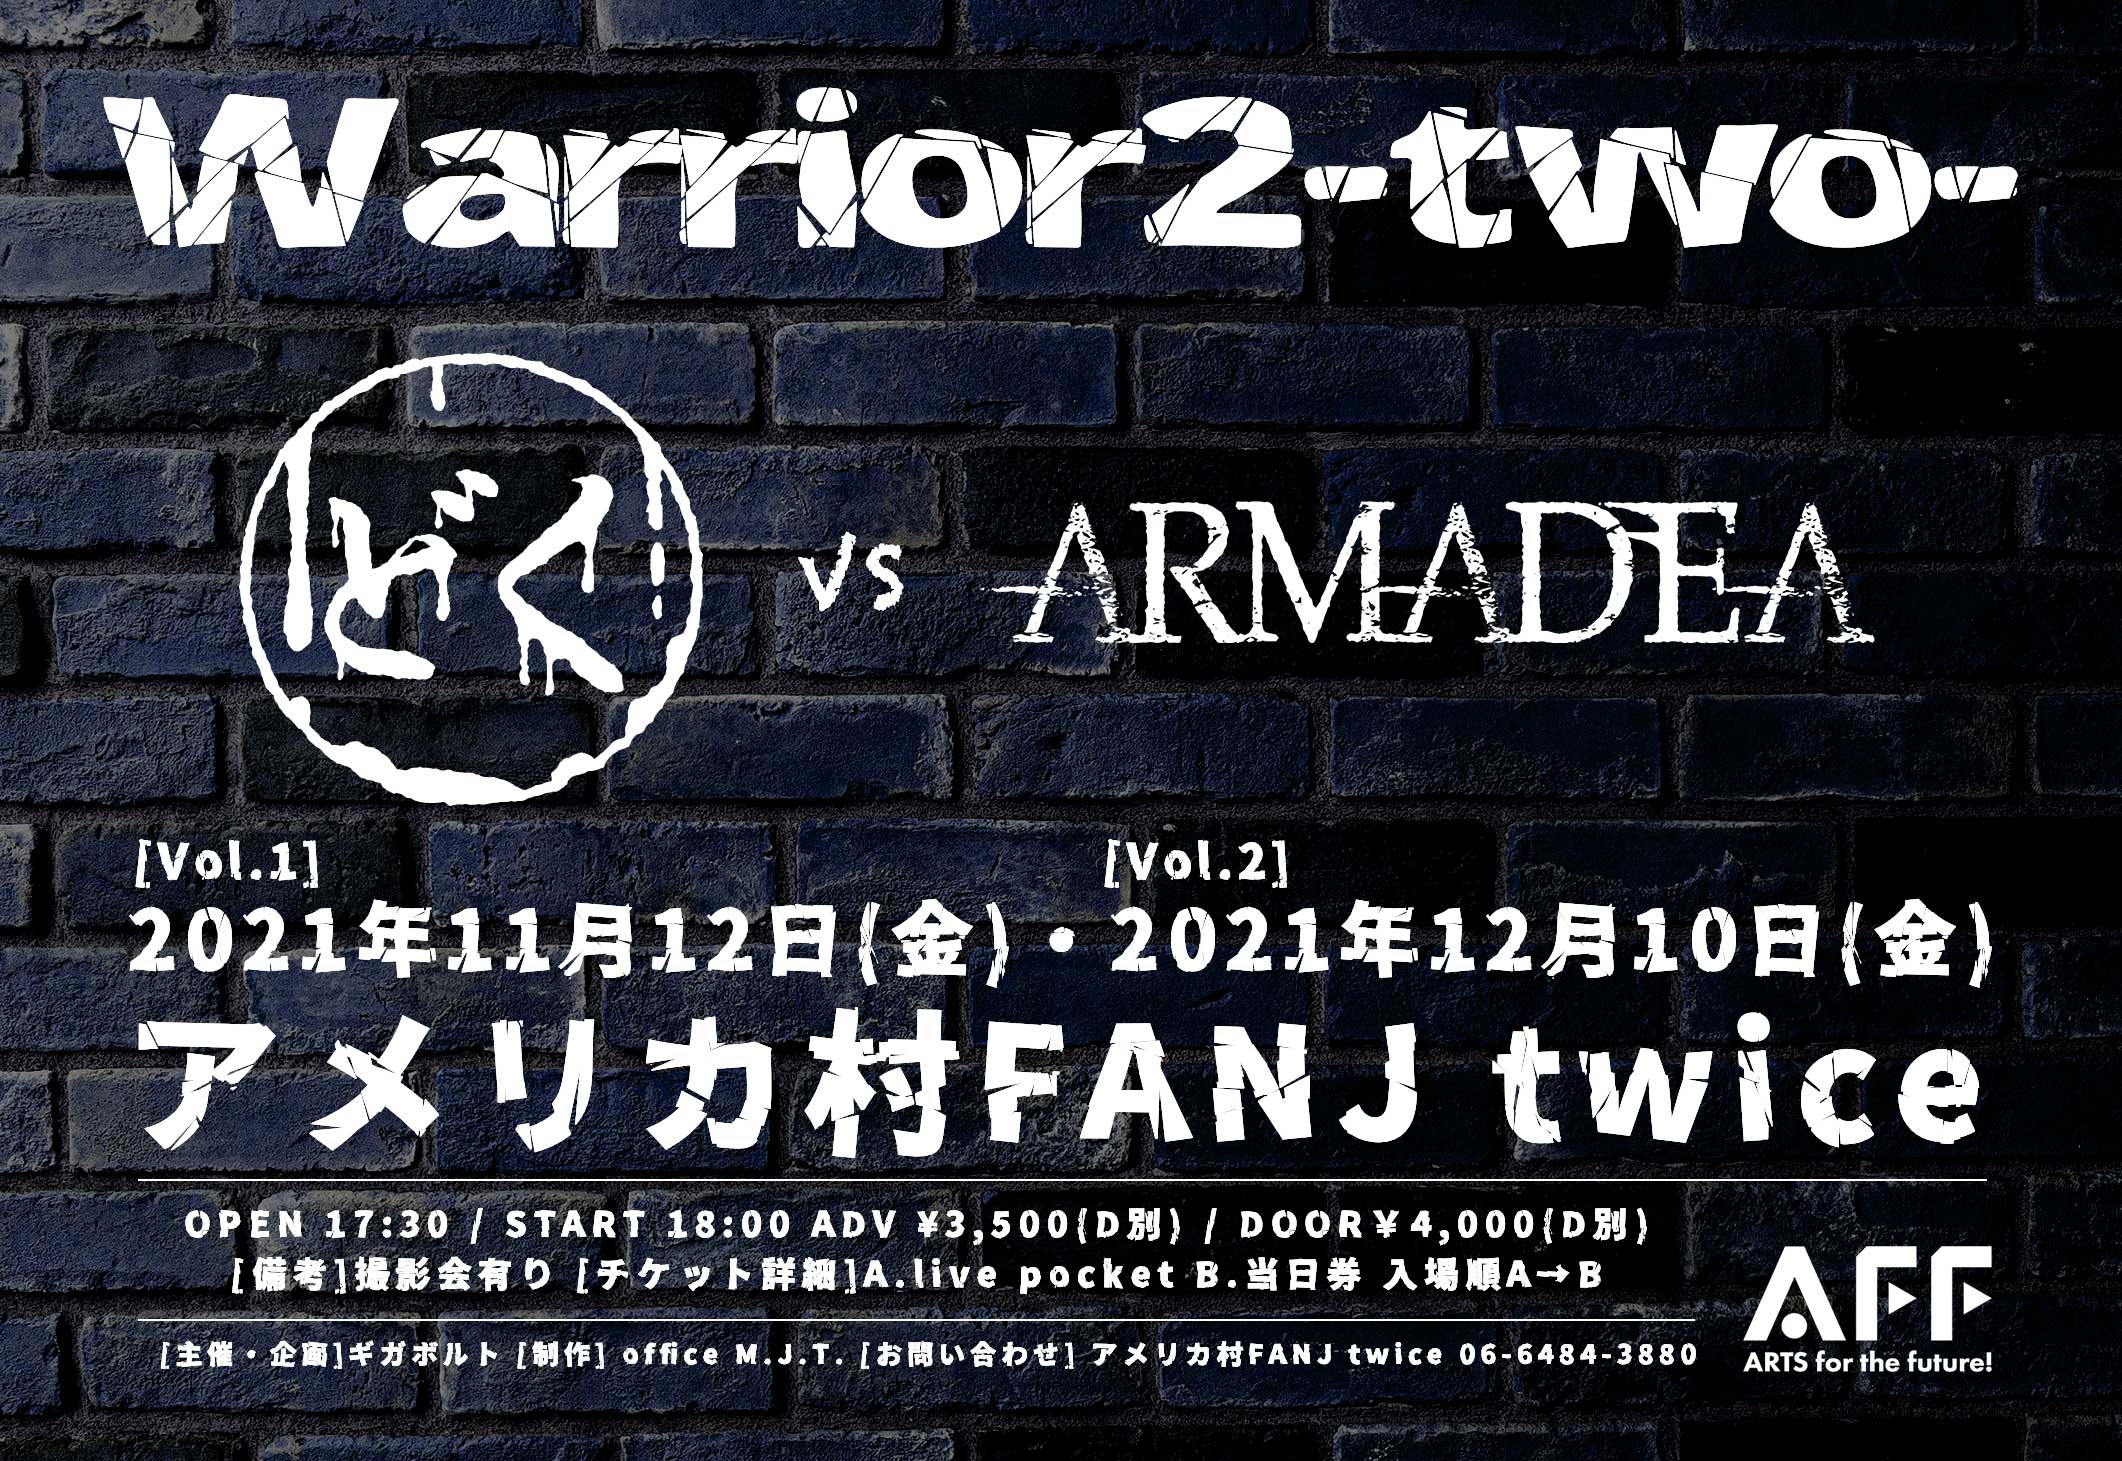 Warrior2-two- Vol.2